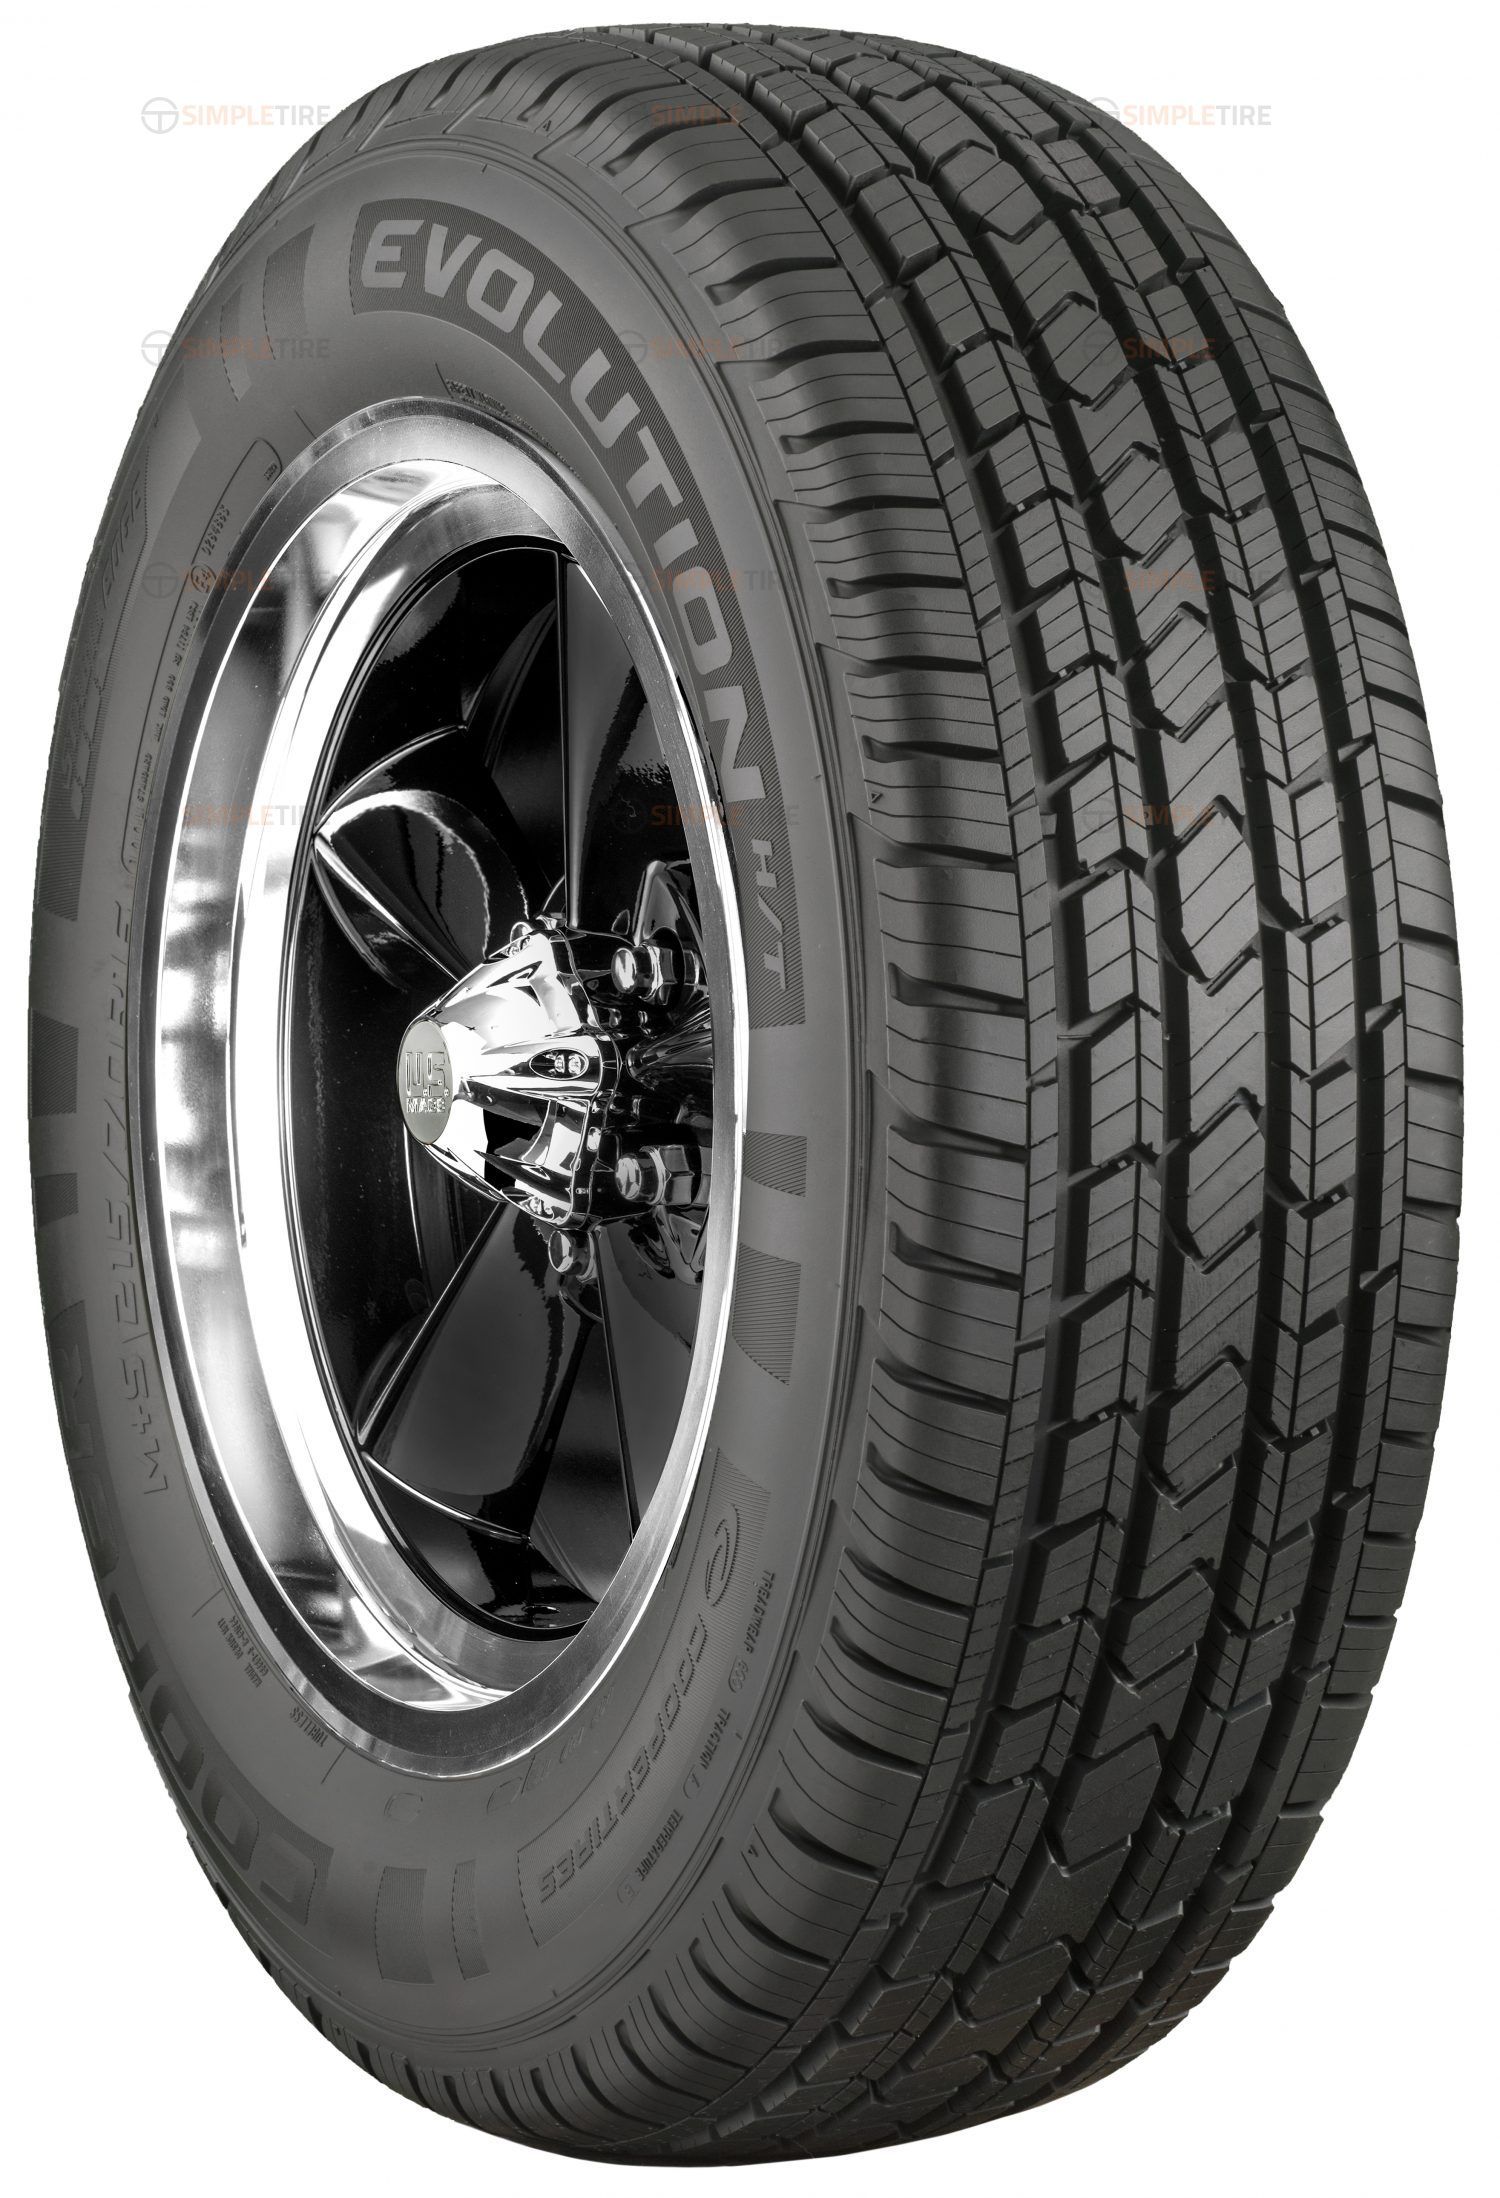 90000029099 245/70R17 Evolution HT Cooper